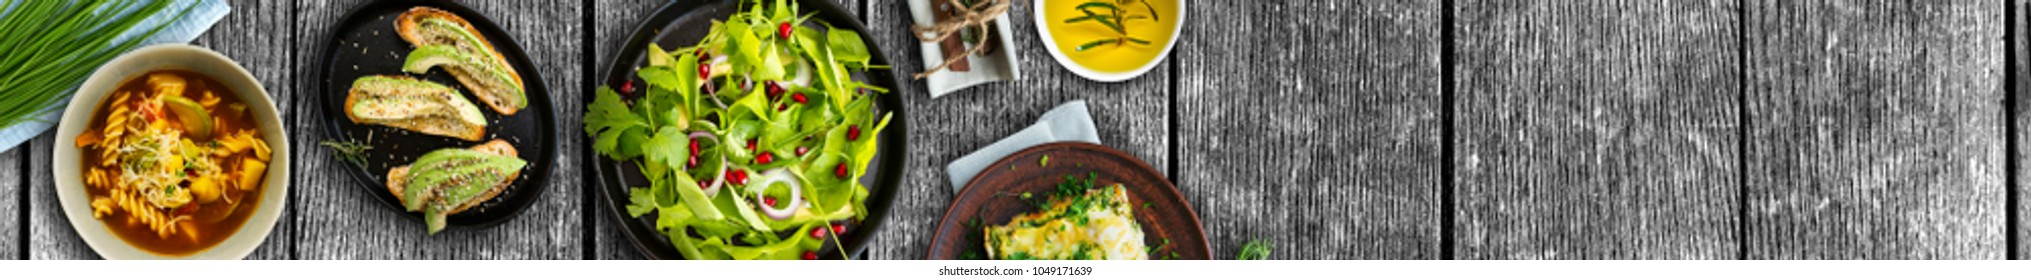 Full banner, wide food background, vegetarian meal and healthy products on rustic wooden table, wide panoramic image. Copy space. Top view.